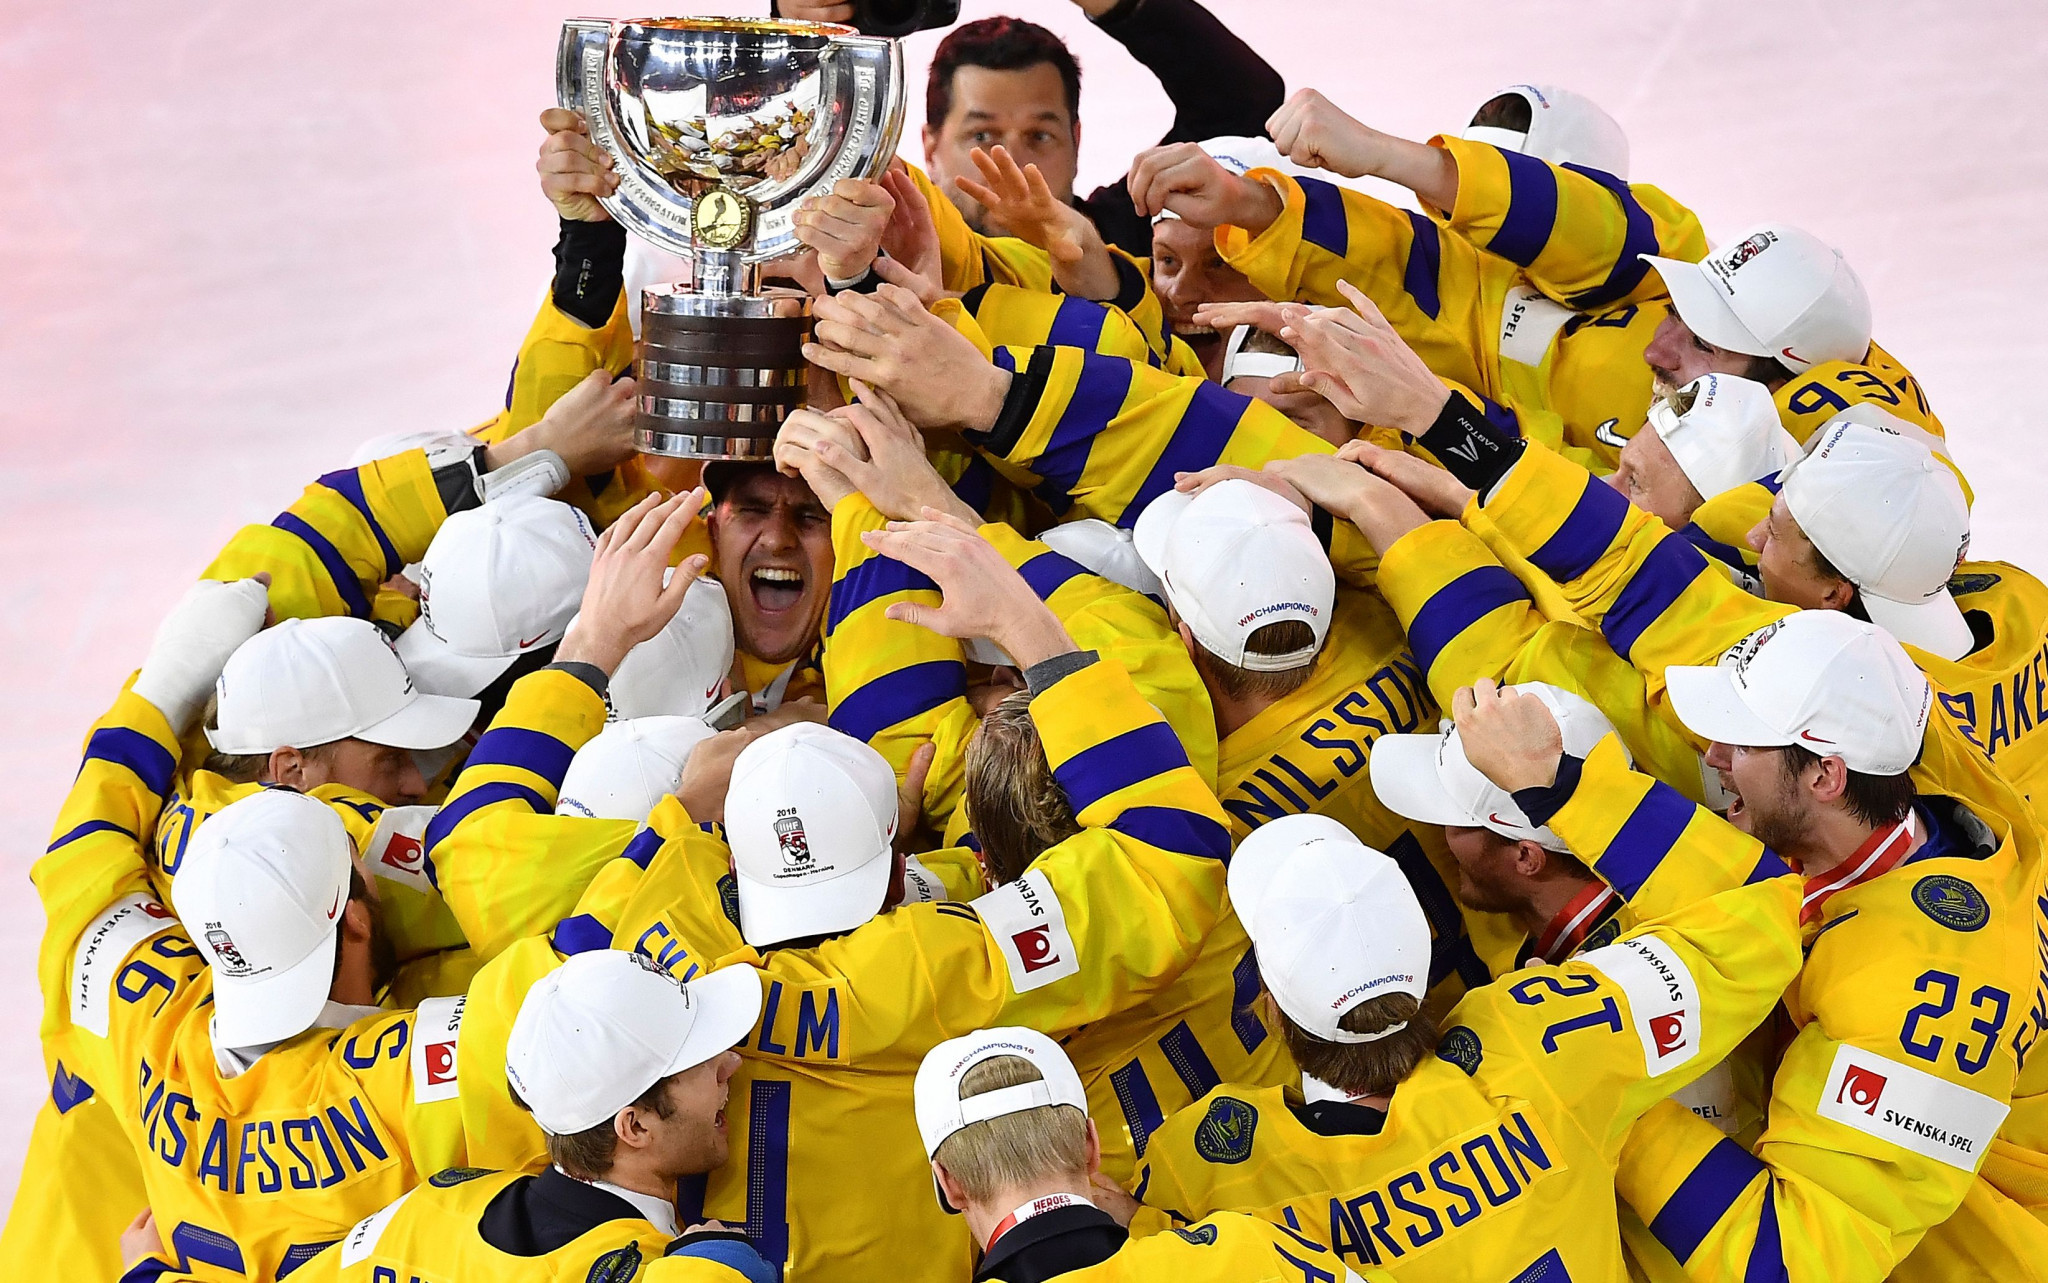 Sweden will be aiming for a third title in a row ©Getty Images